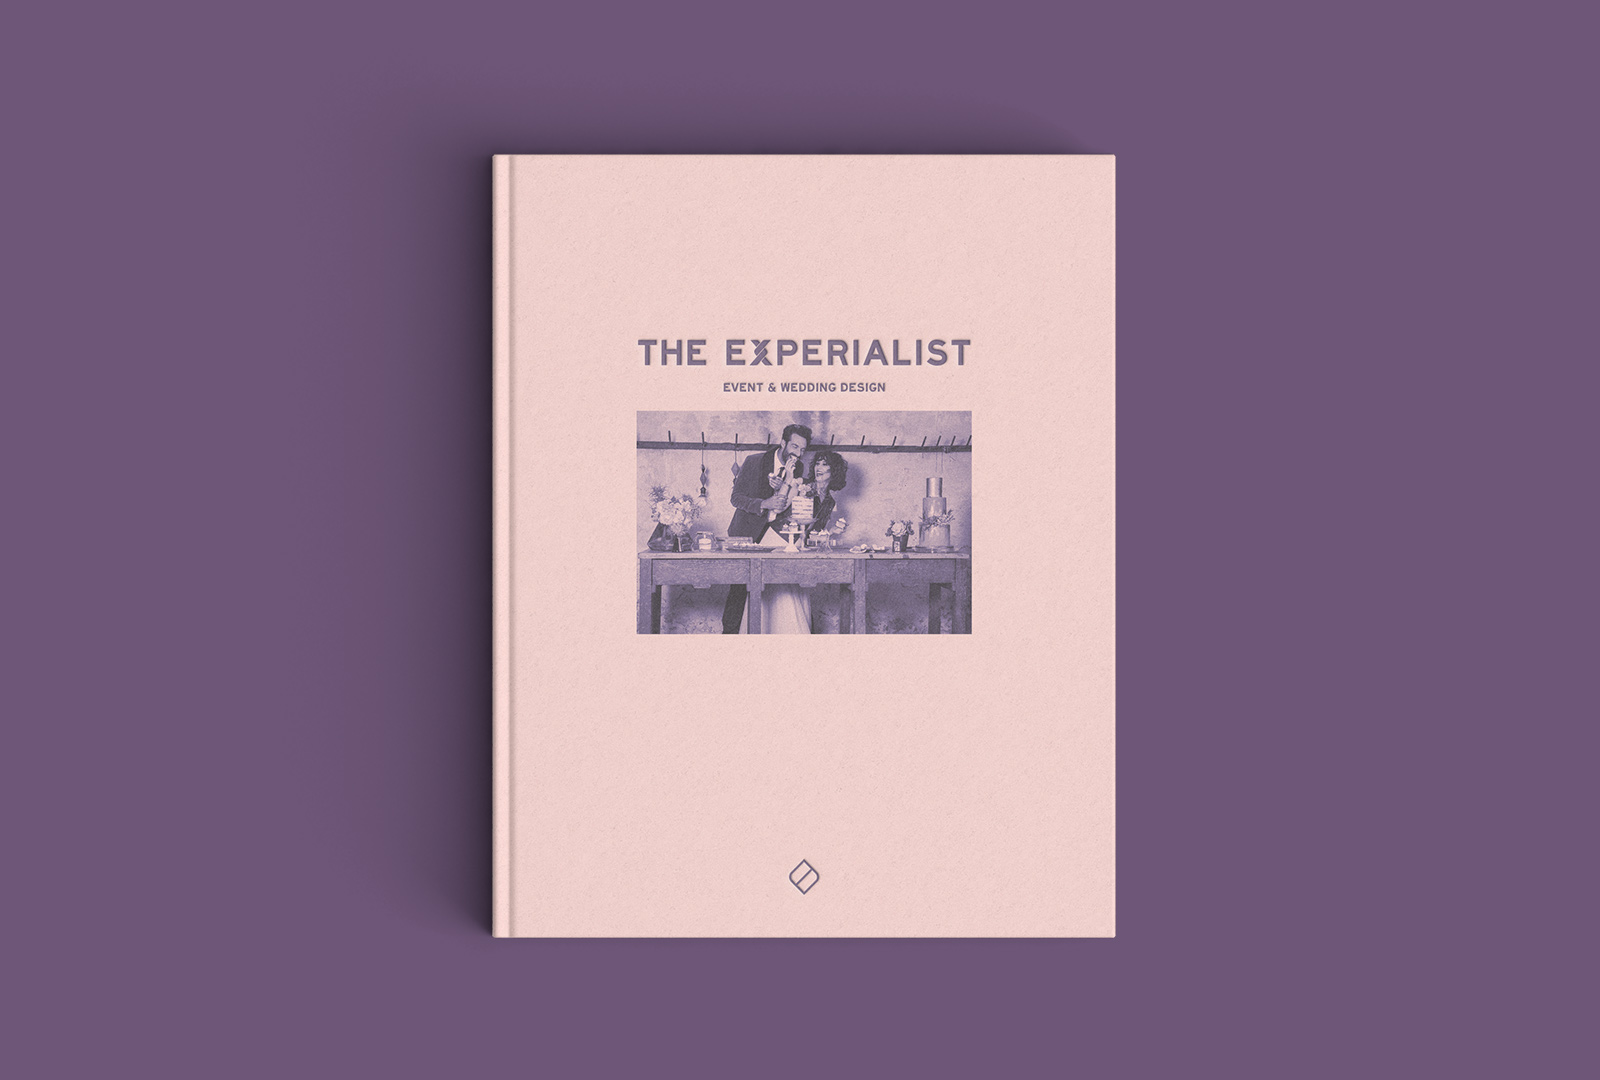 THE-EXPERIALIST-1600108003